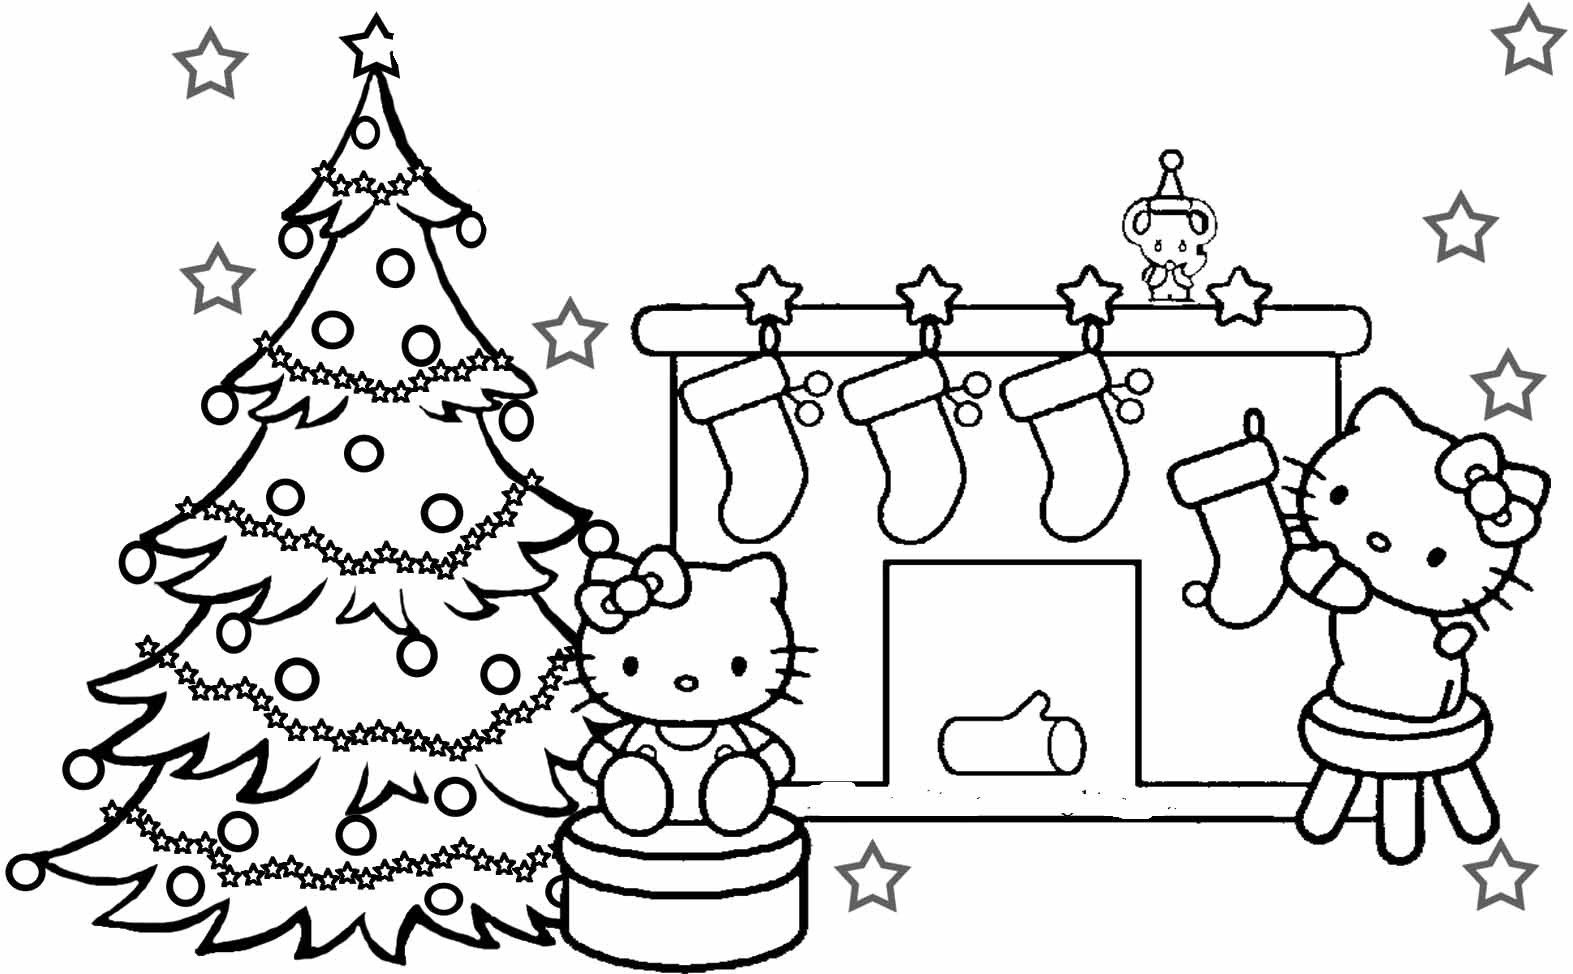 Free Christmas Coloring Sheets For Kids  Christmas Coloring Pages For Kids Printable Coloring Home